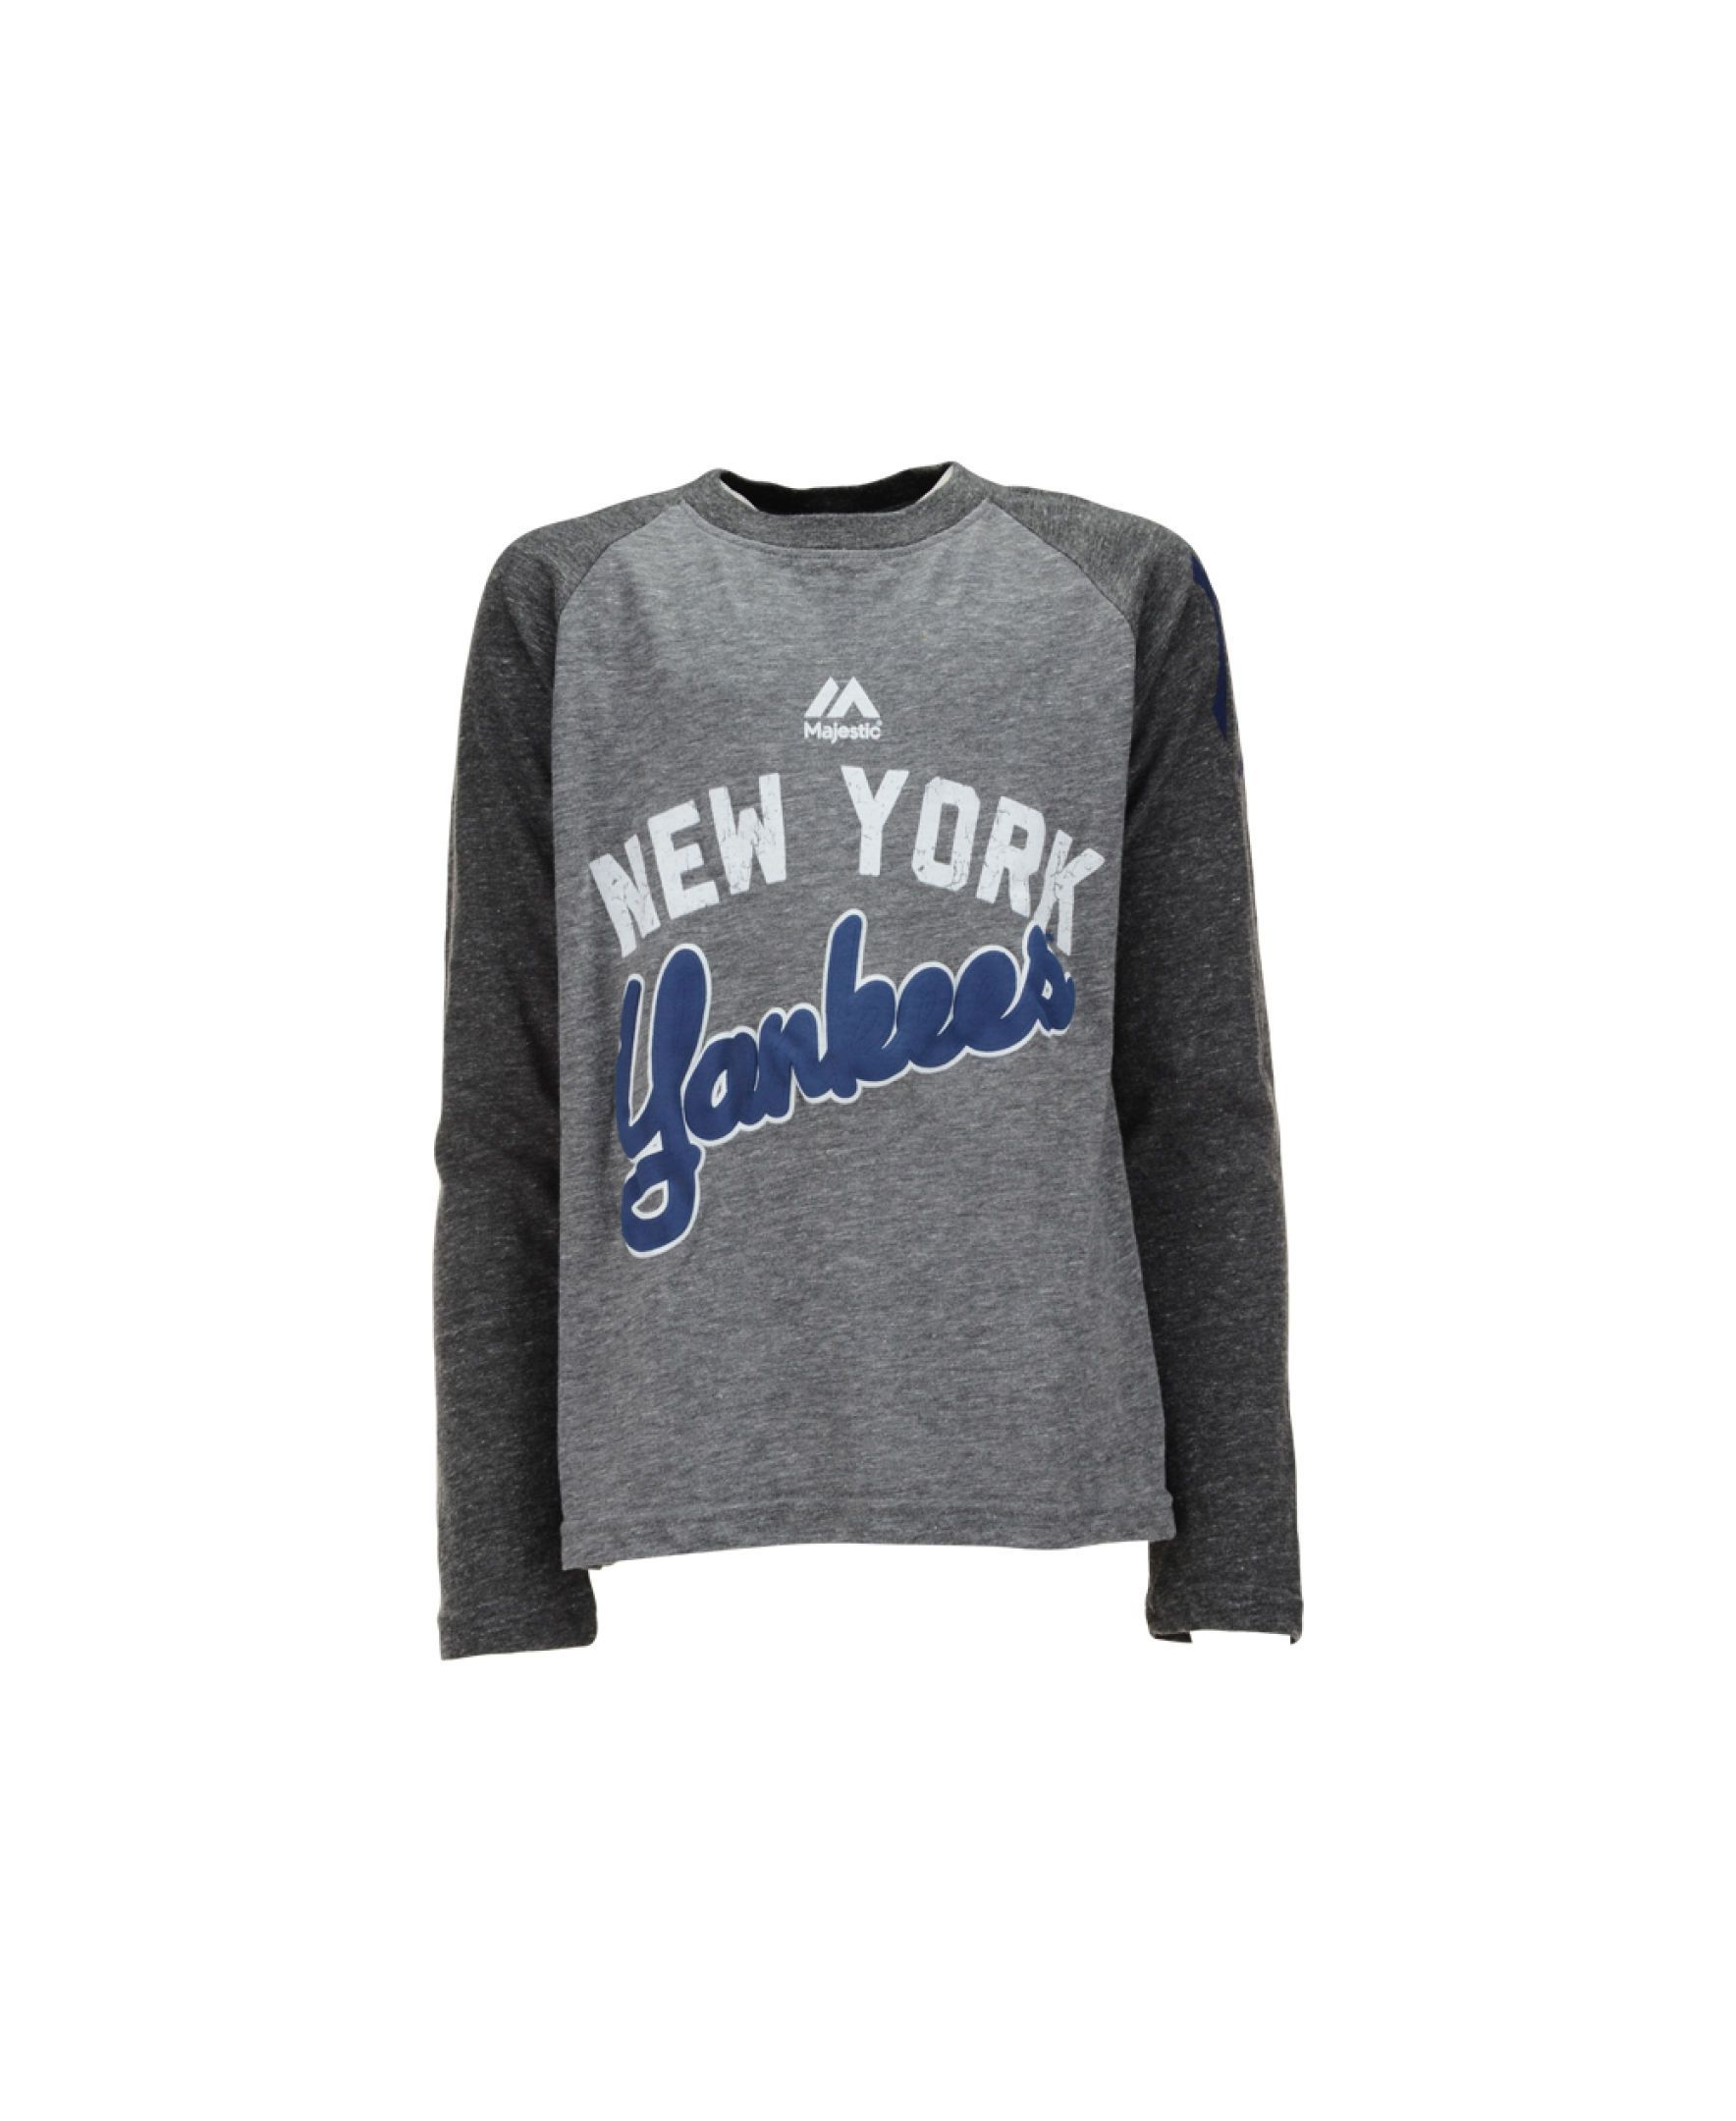 9fdc72d7f Majestic Boys' New York Yankees Striker Raglan T-Shirt | Products ...